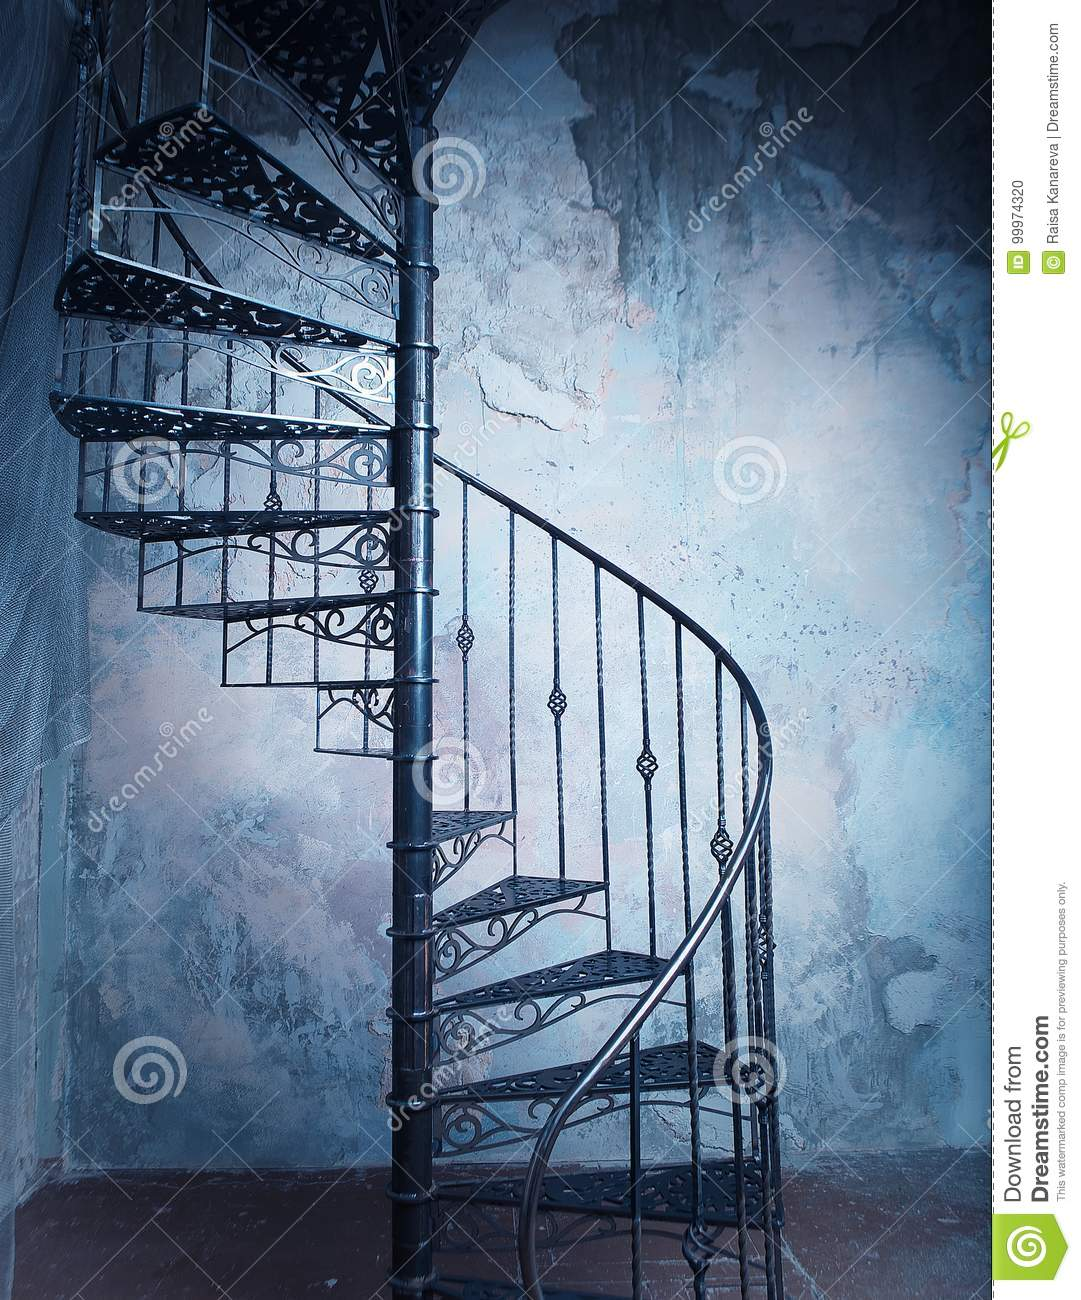 Accent Wall For Circular Staircase: Metal Spiral Staircase Against The Old Wall Background